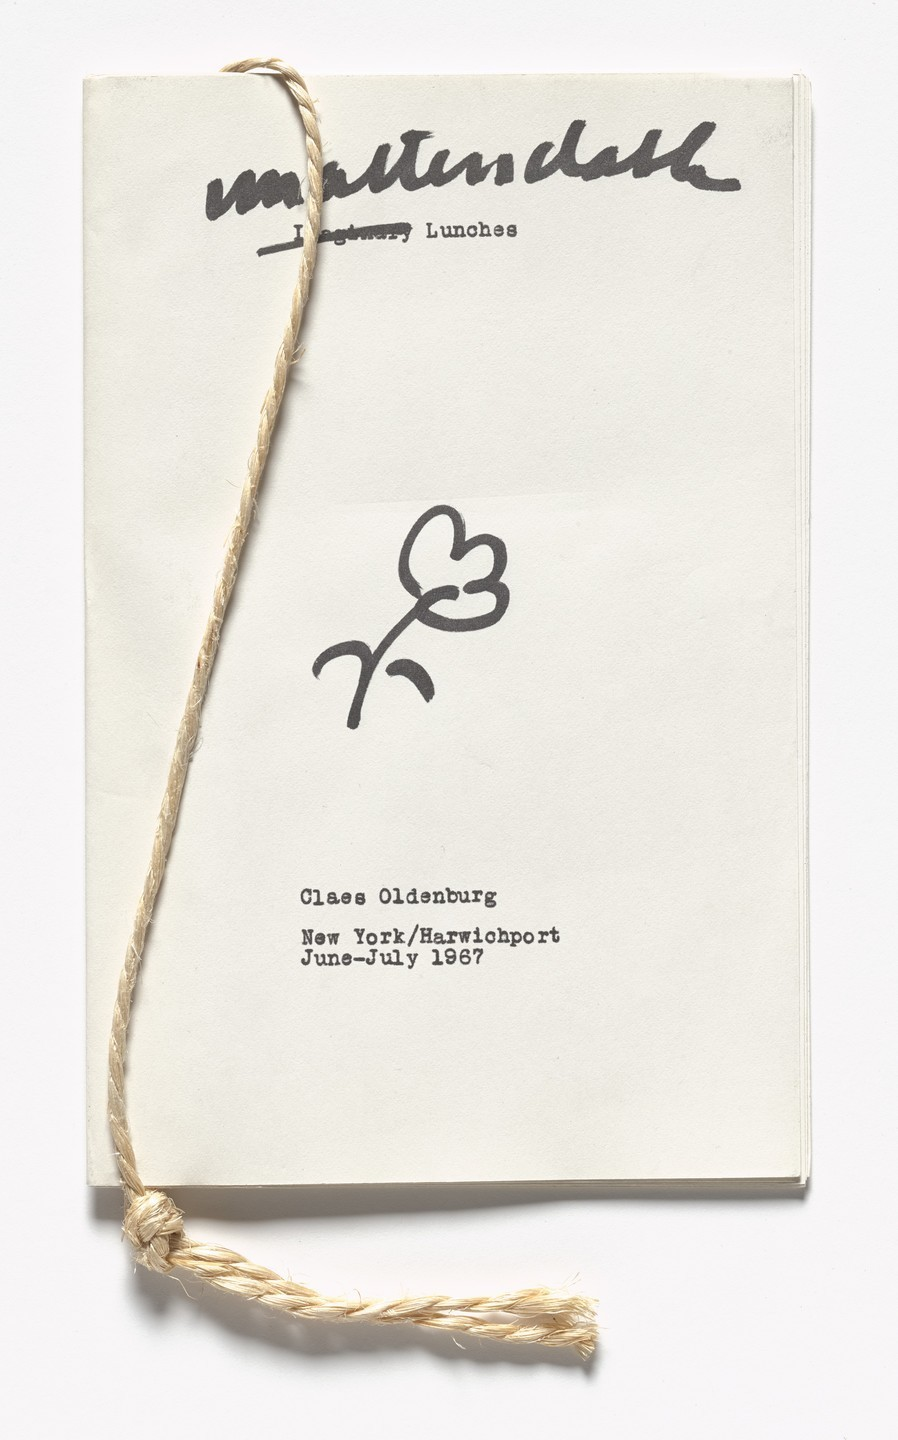 Claes Oldenburg - Unattendable Lunches from S.M.S. No. 6, 1968